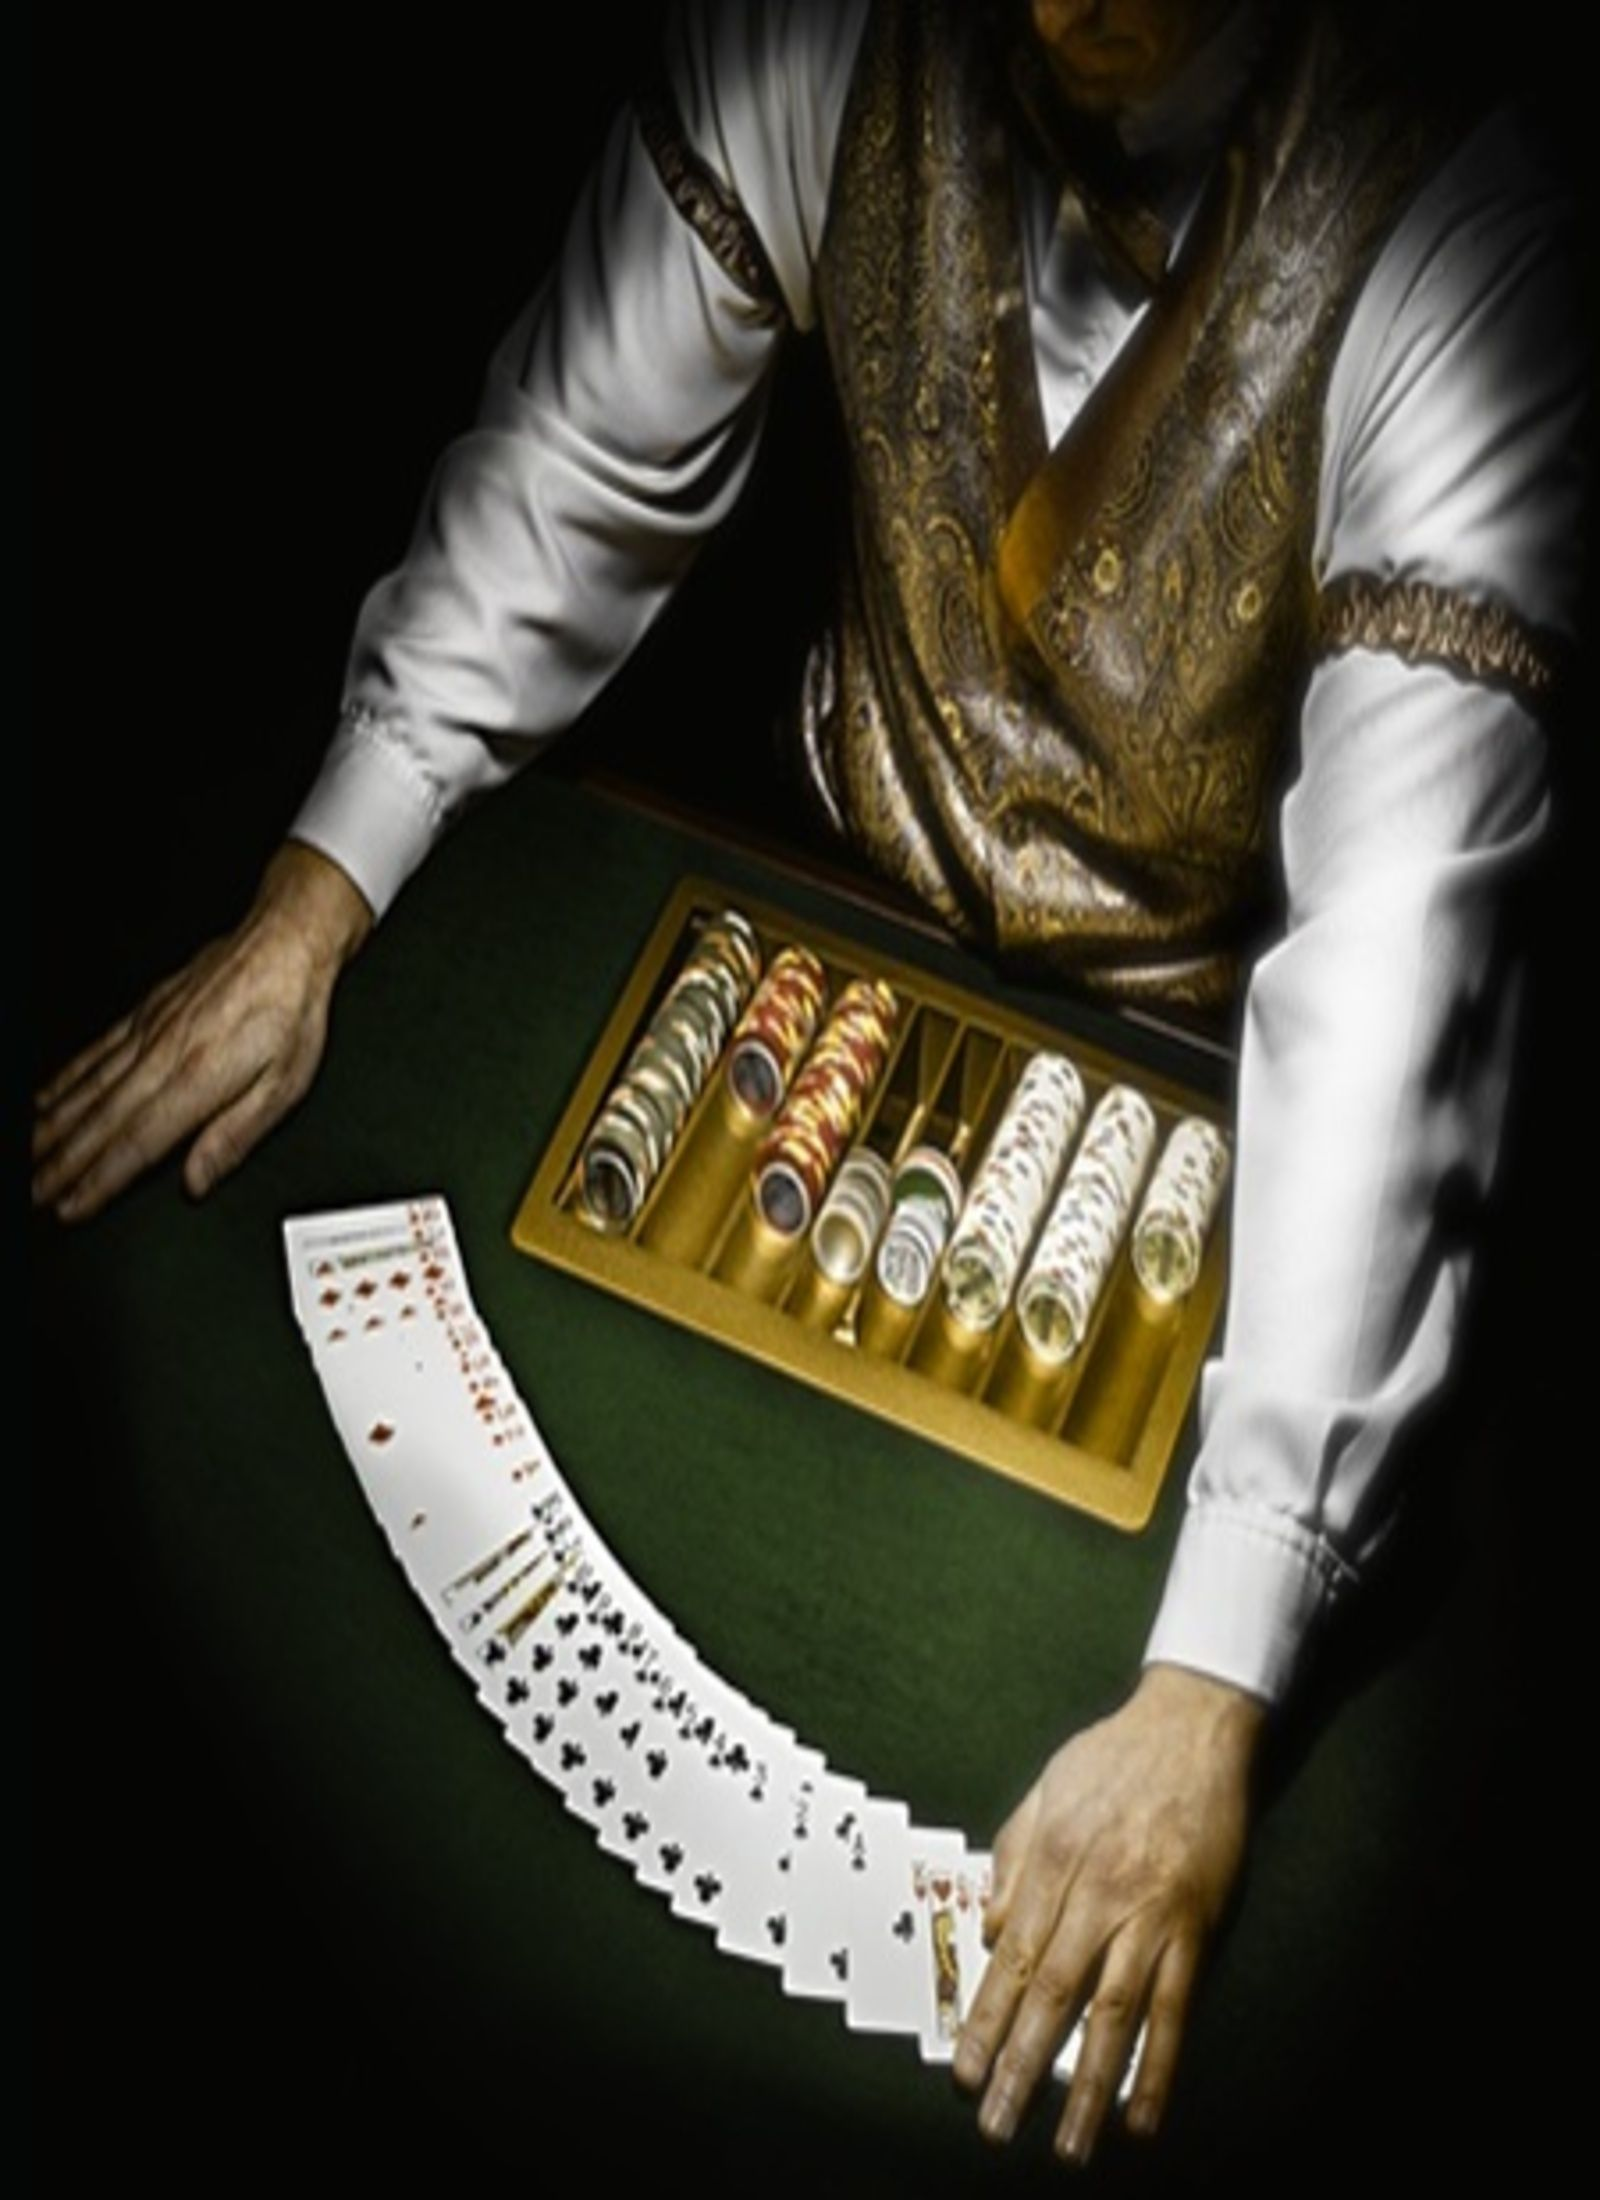 Loose holdem strategy